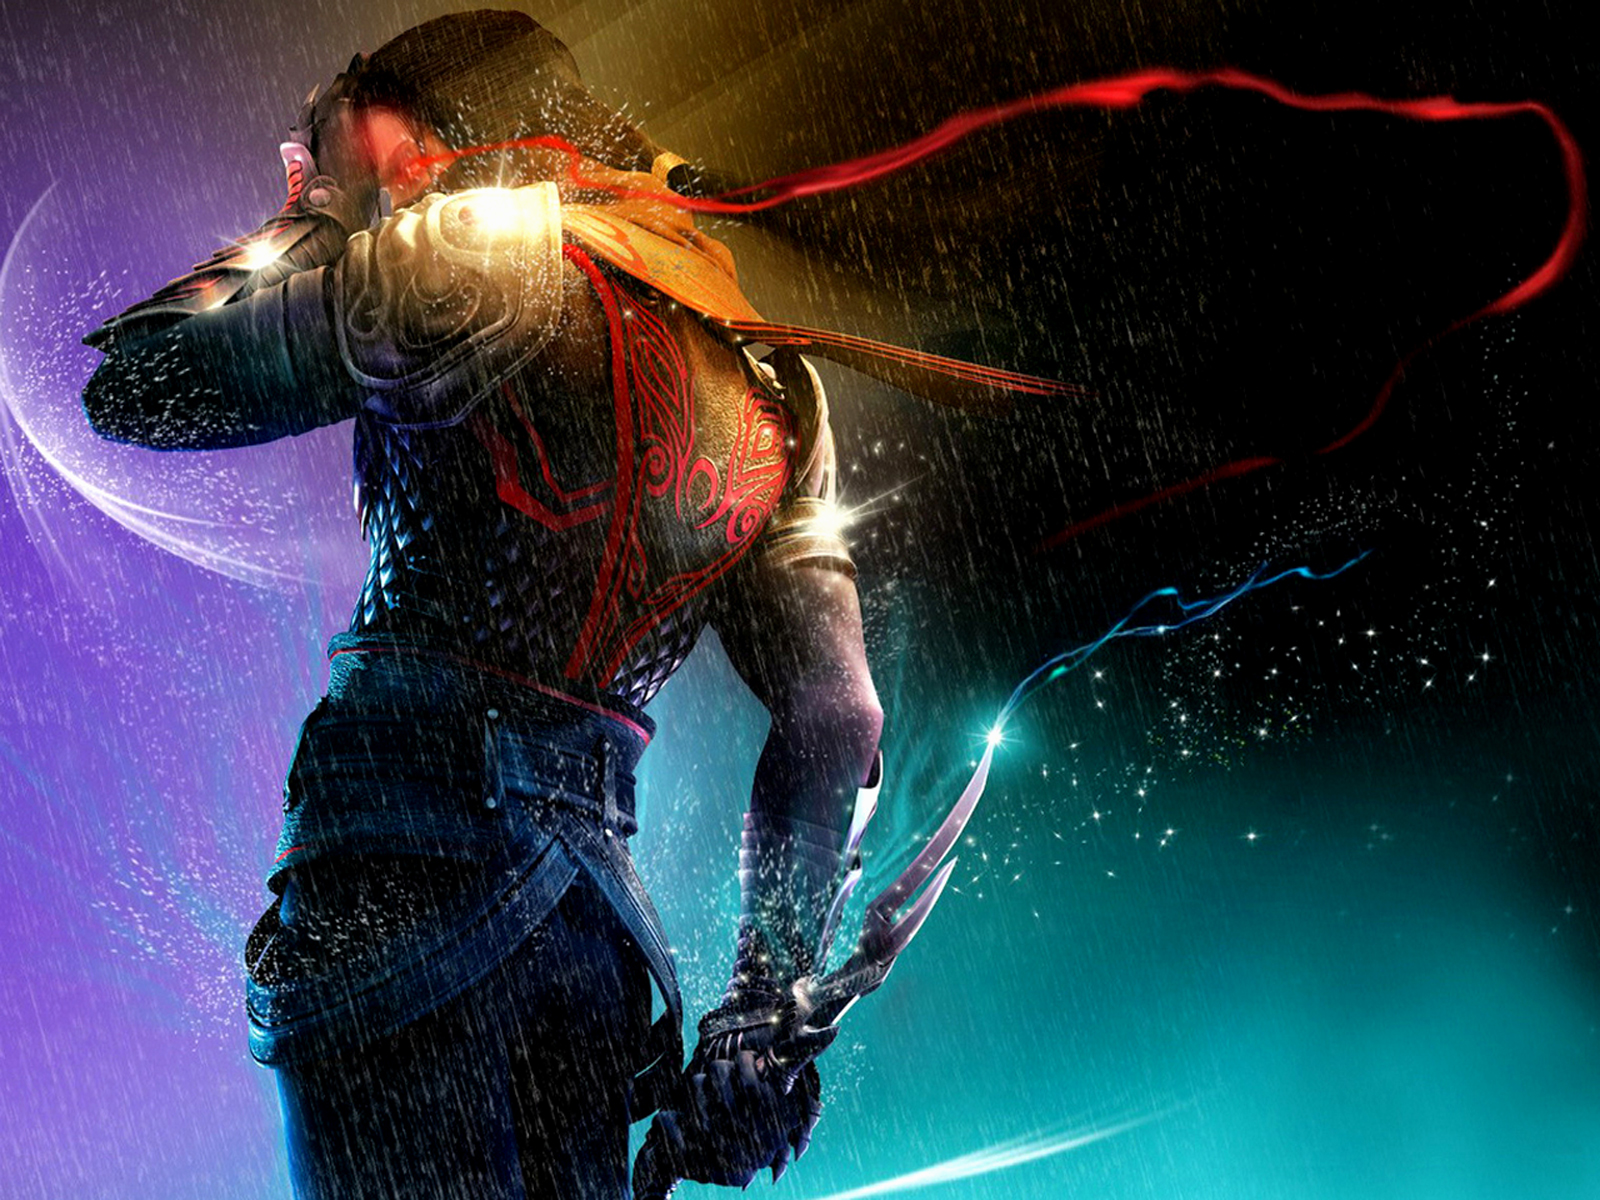 Download free prince of persia hd wallpaper 2 | hd wallpapers.